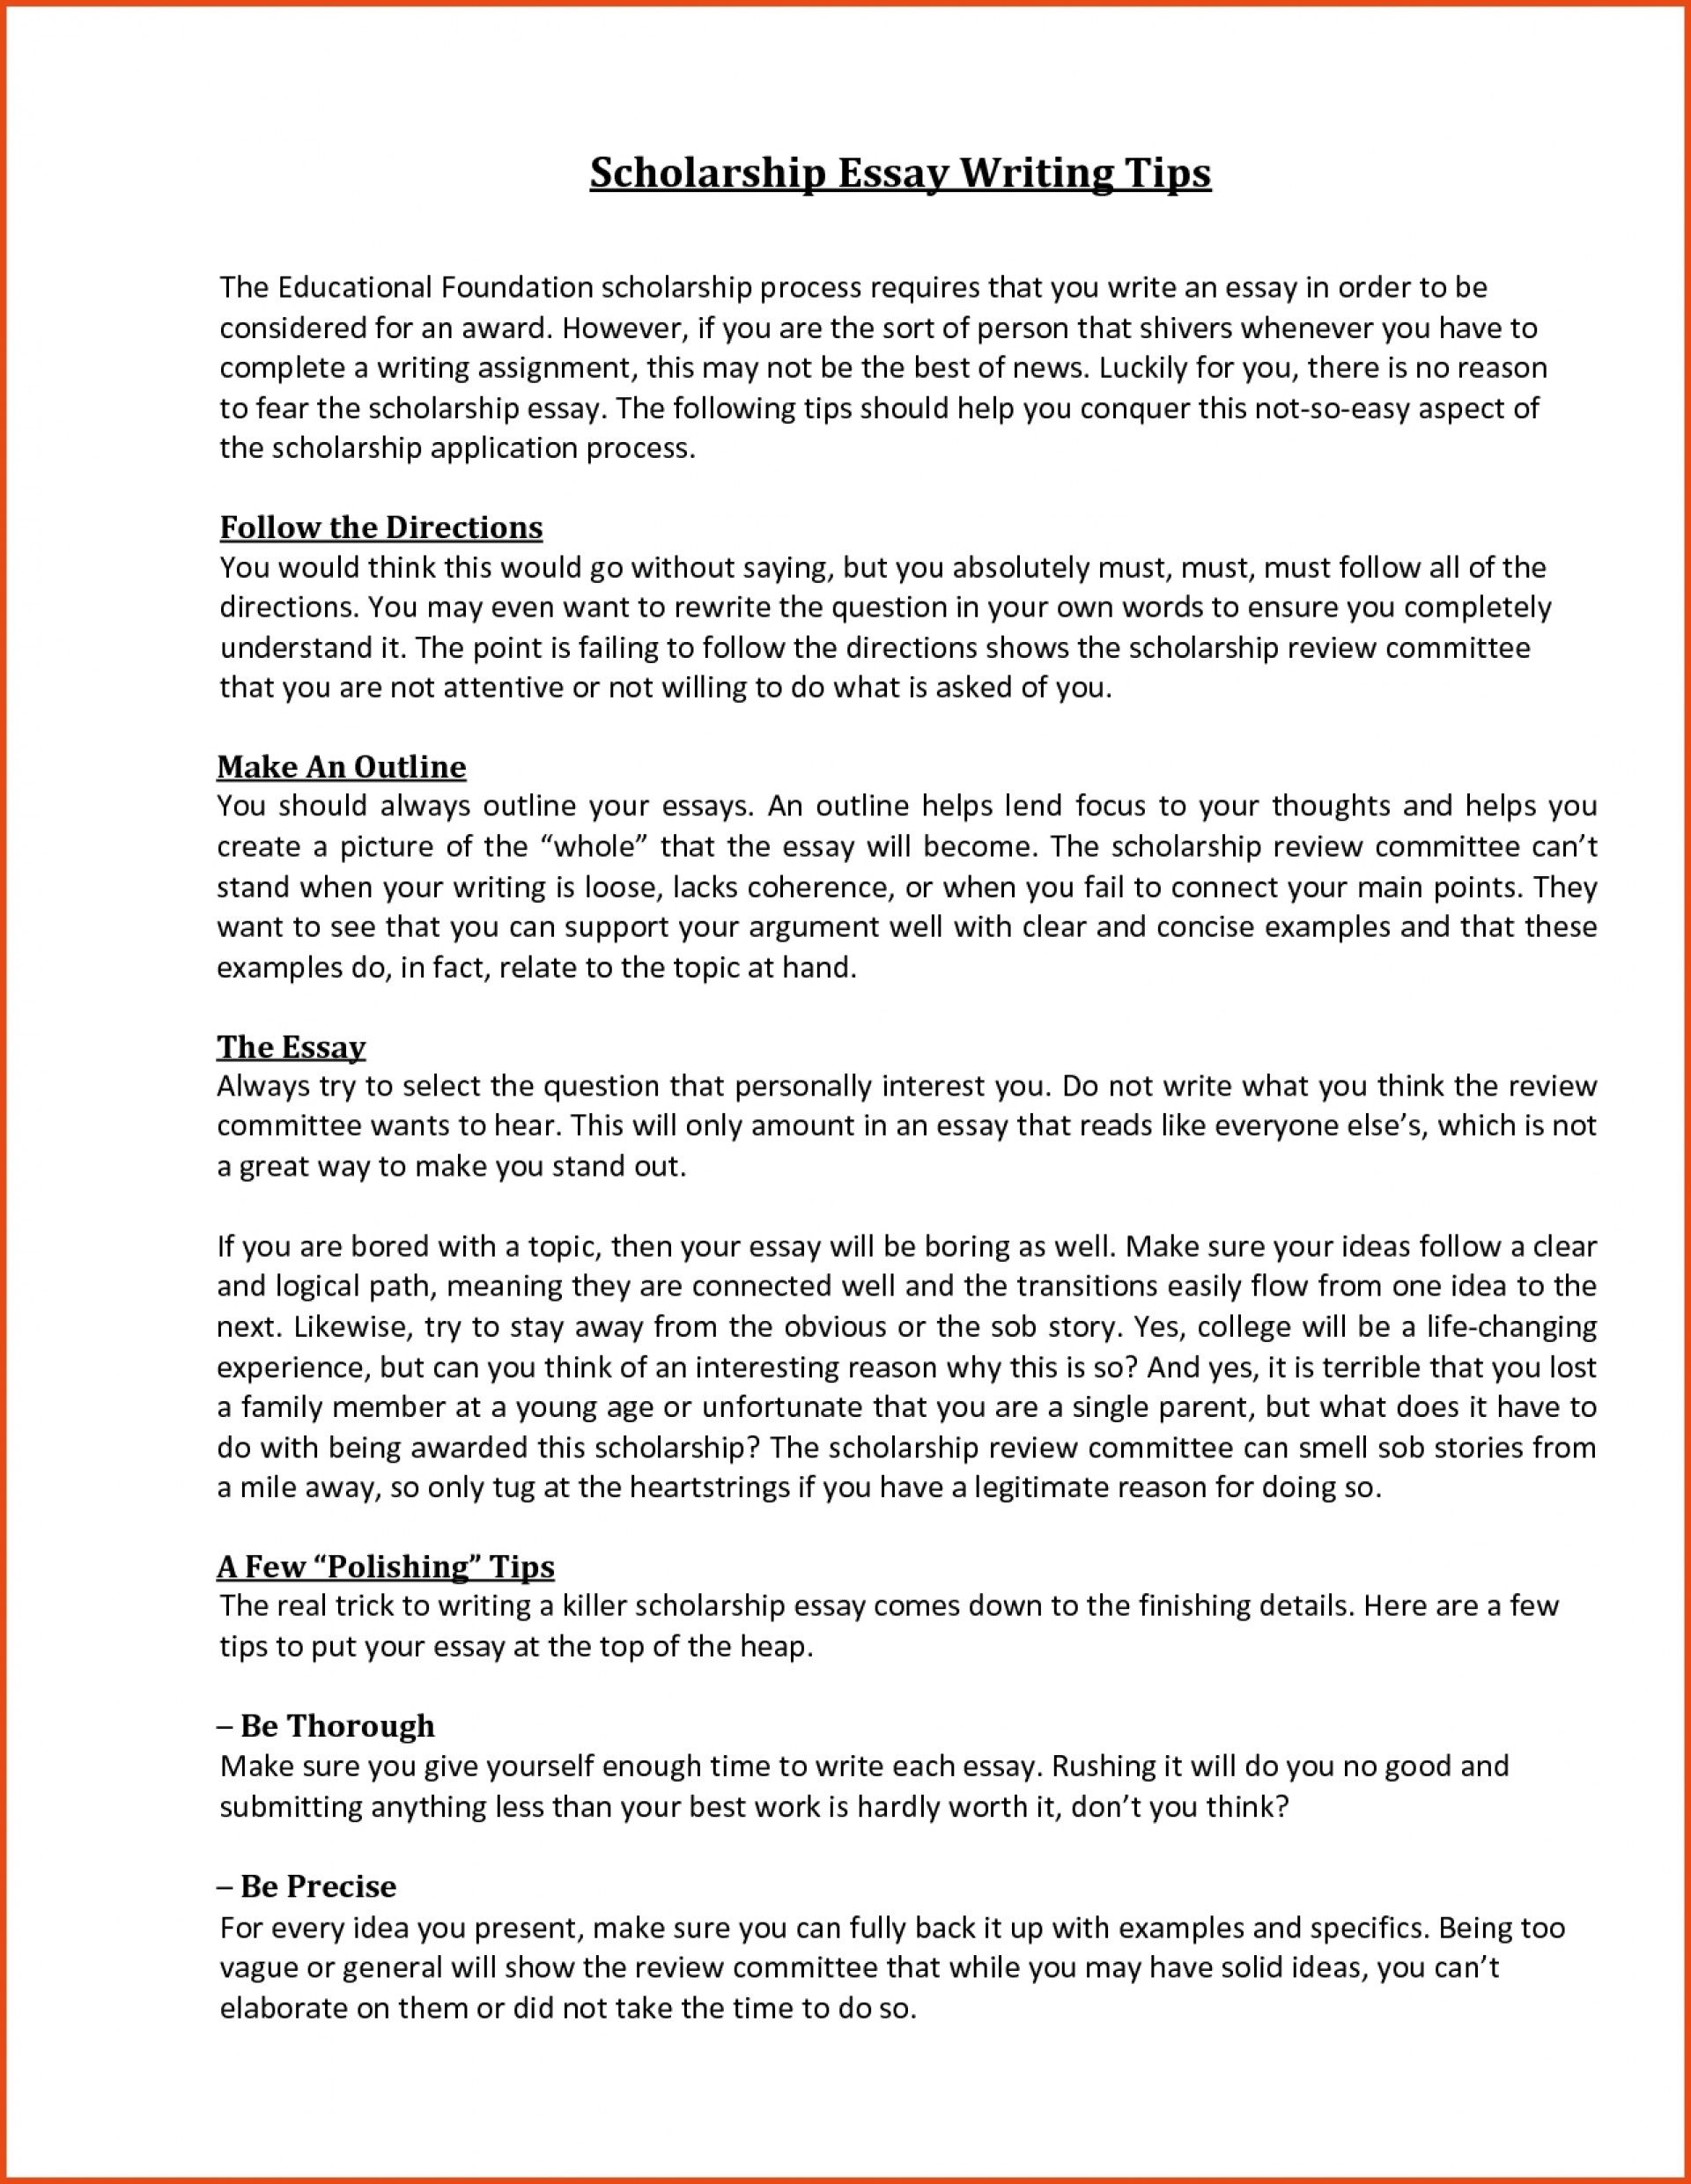 003 Scholarship Essay Format Sample With Regard To Sensational College Essays For Writing 1920